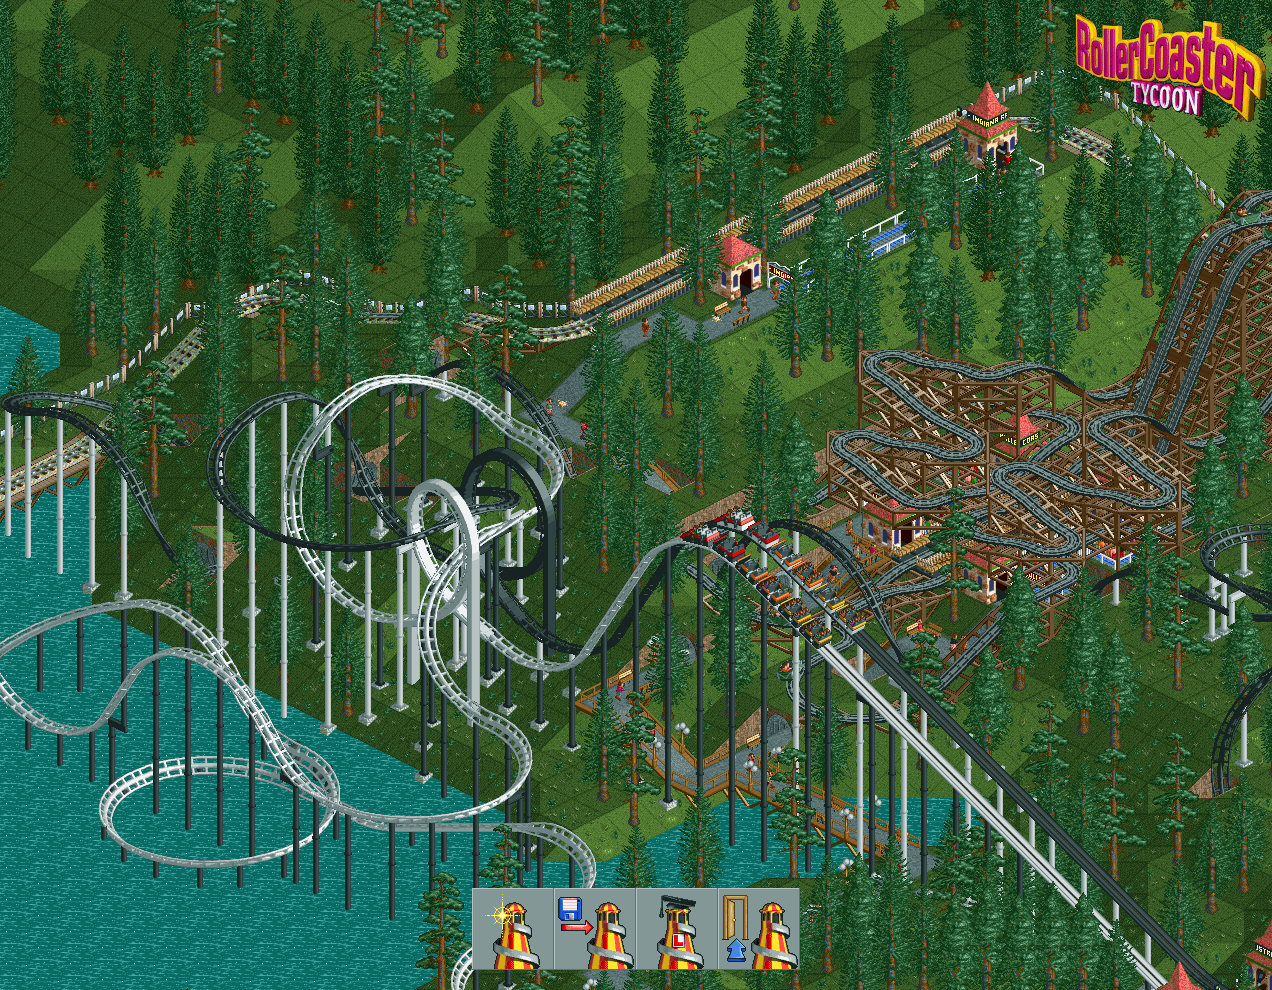 RollerCoaster Tycoon saved games